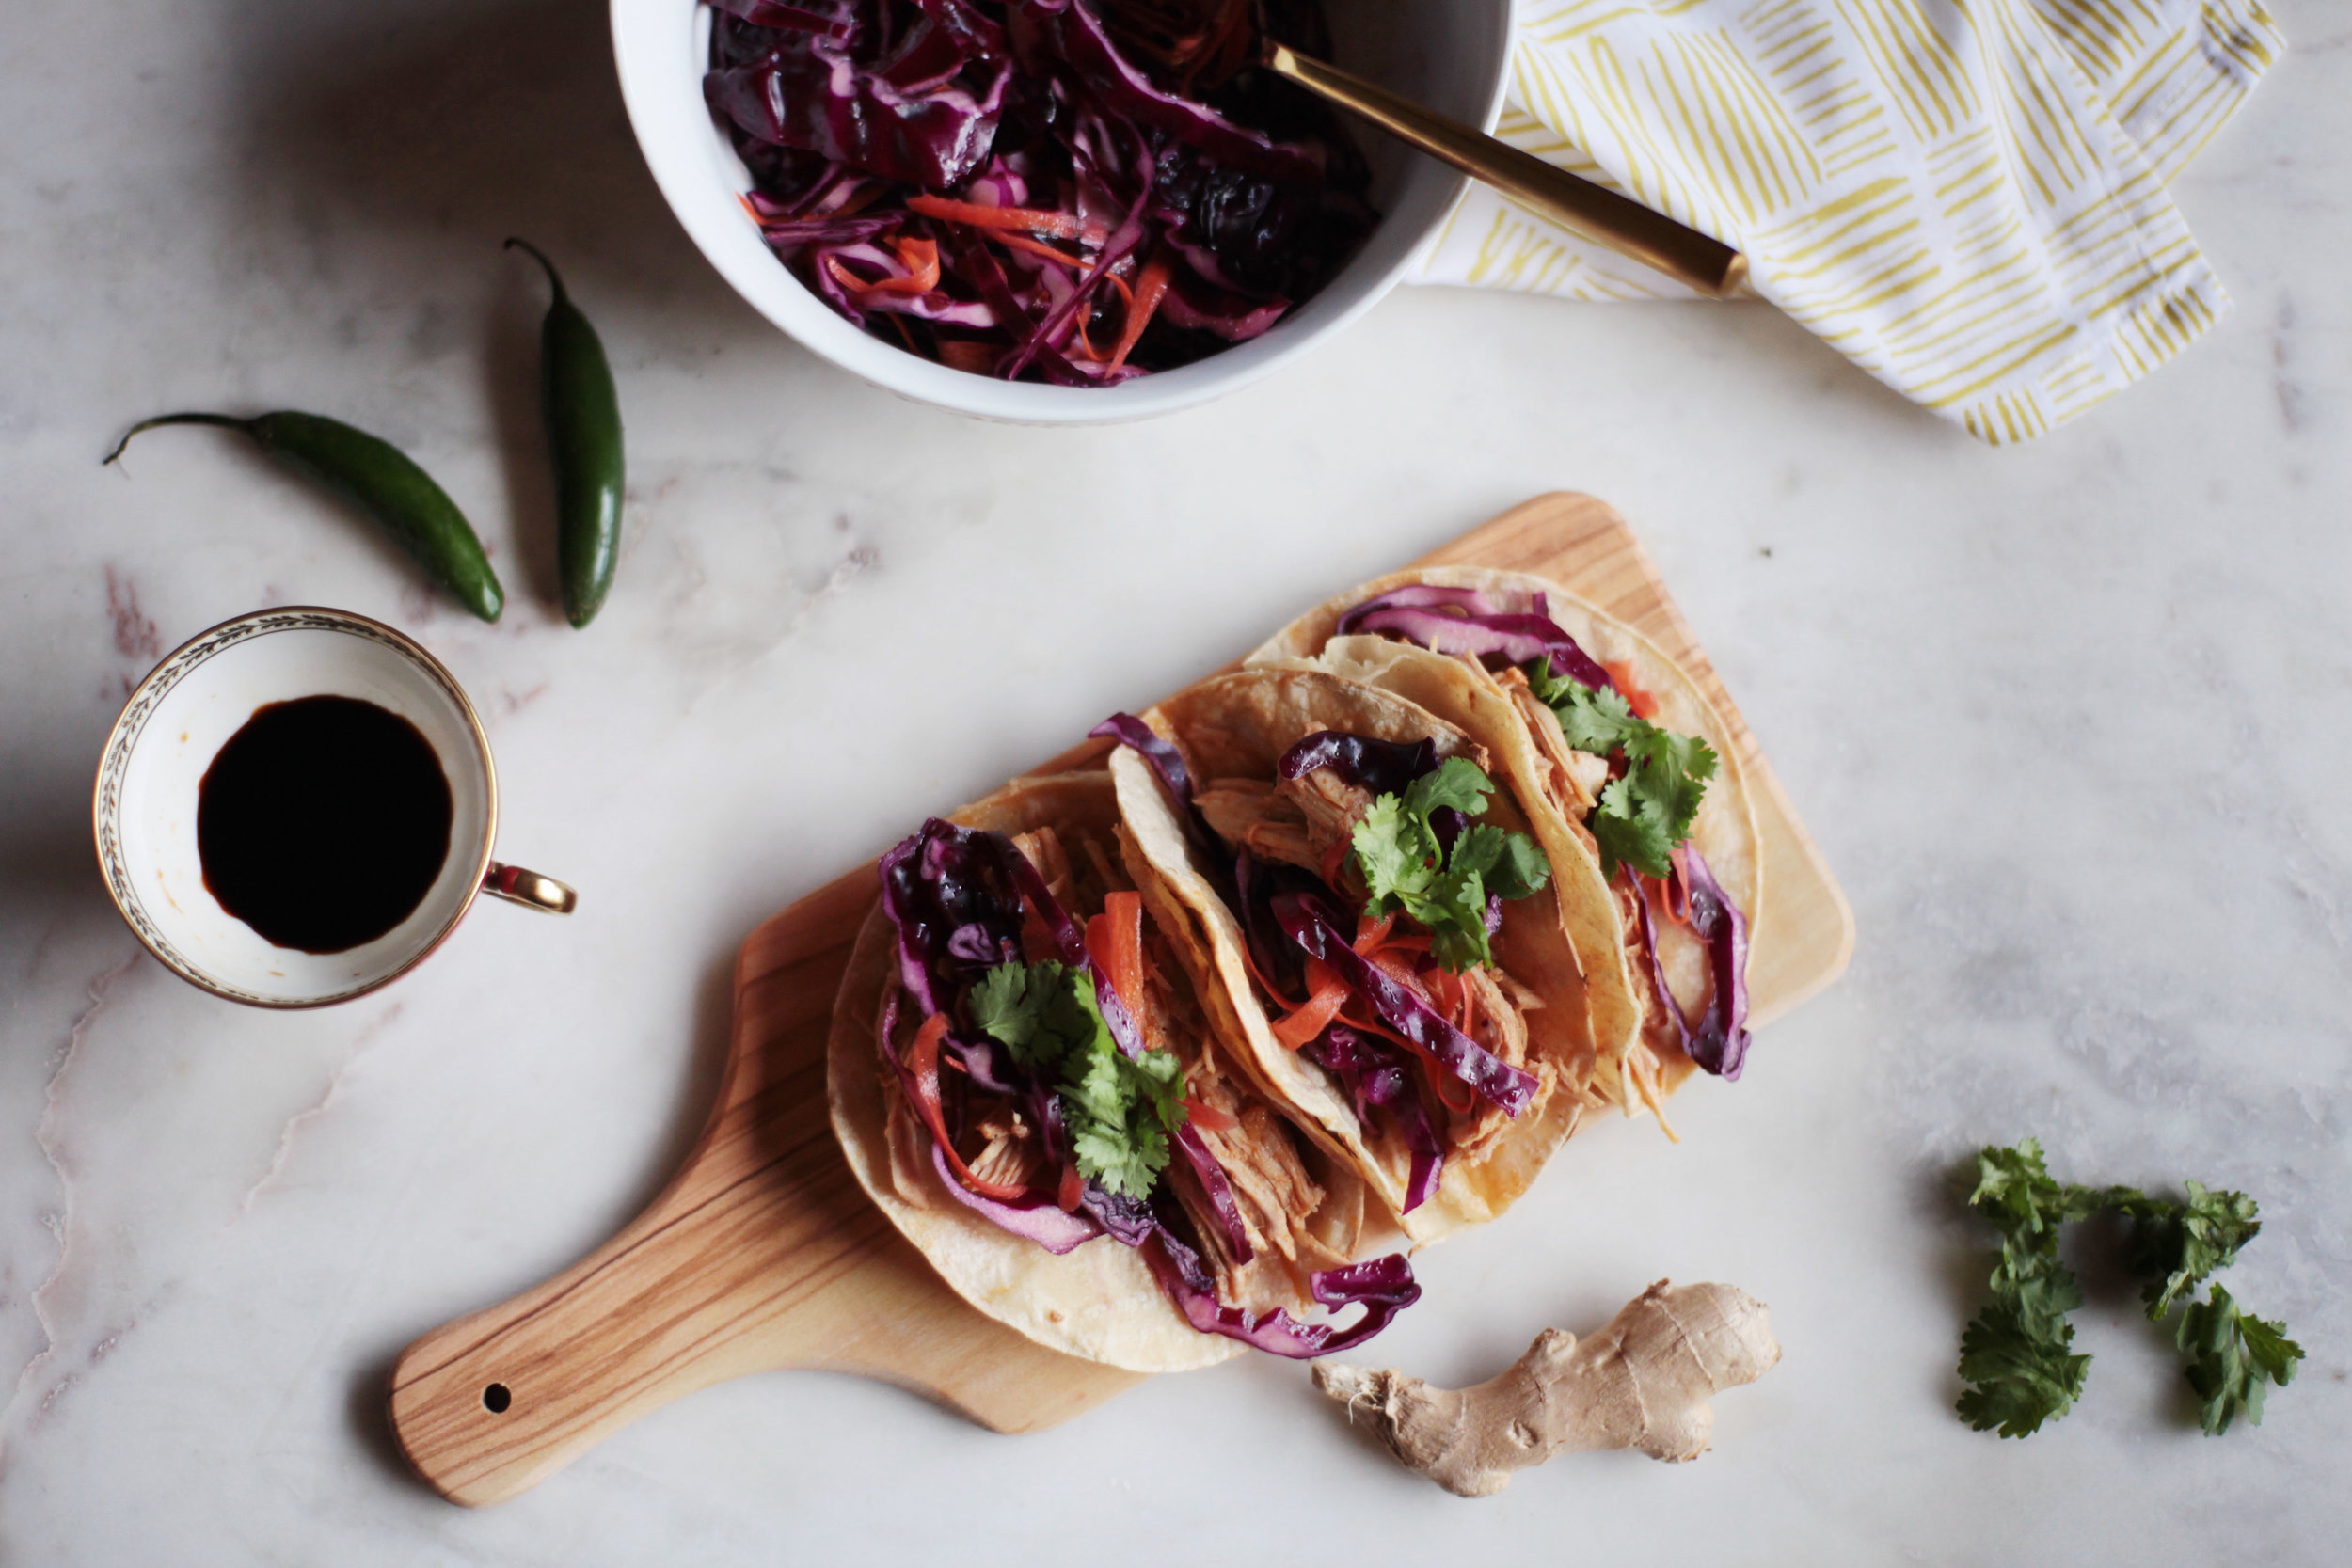 Korean Barbecue Tacos with Vinegar Slaw - Tastemaker Blog